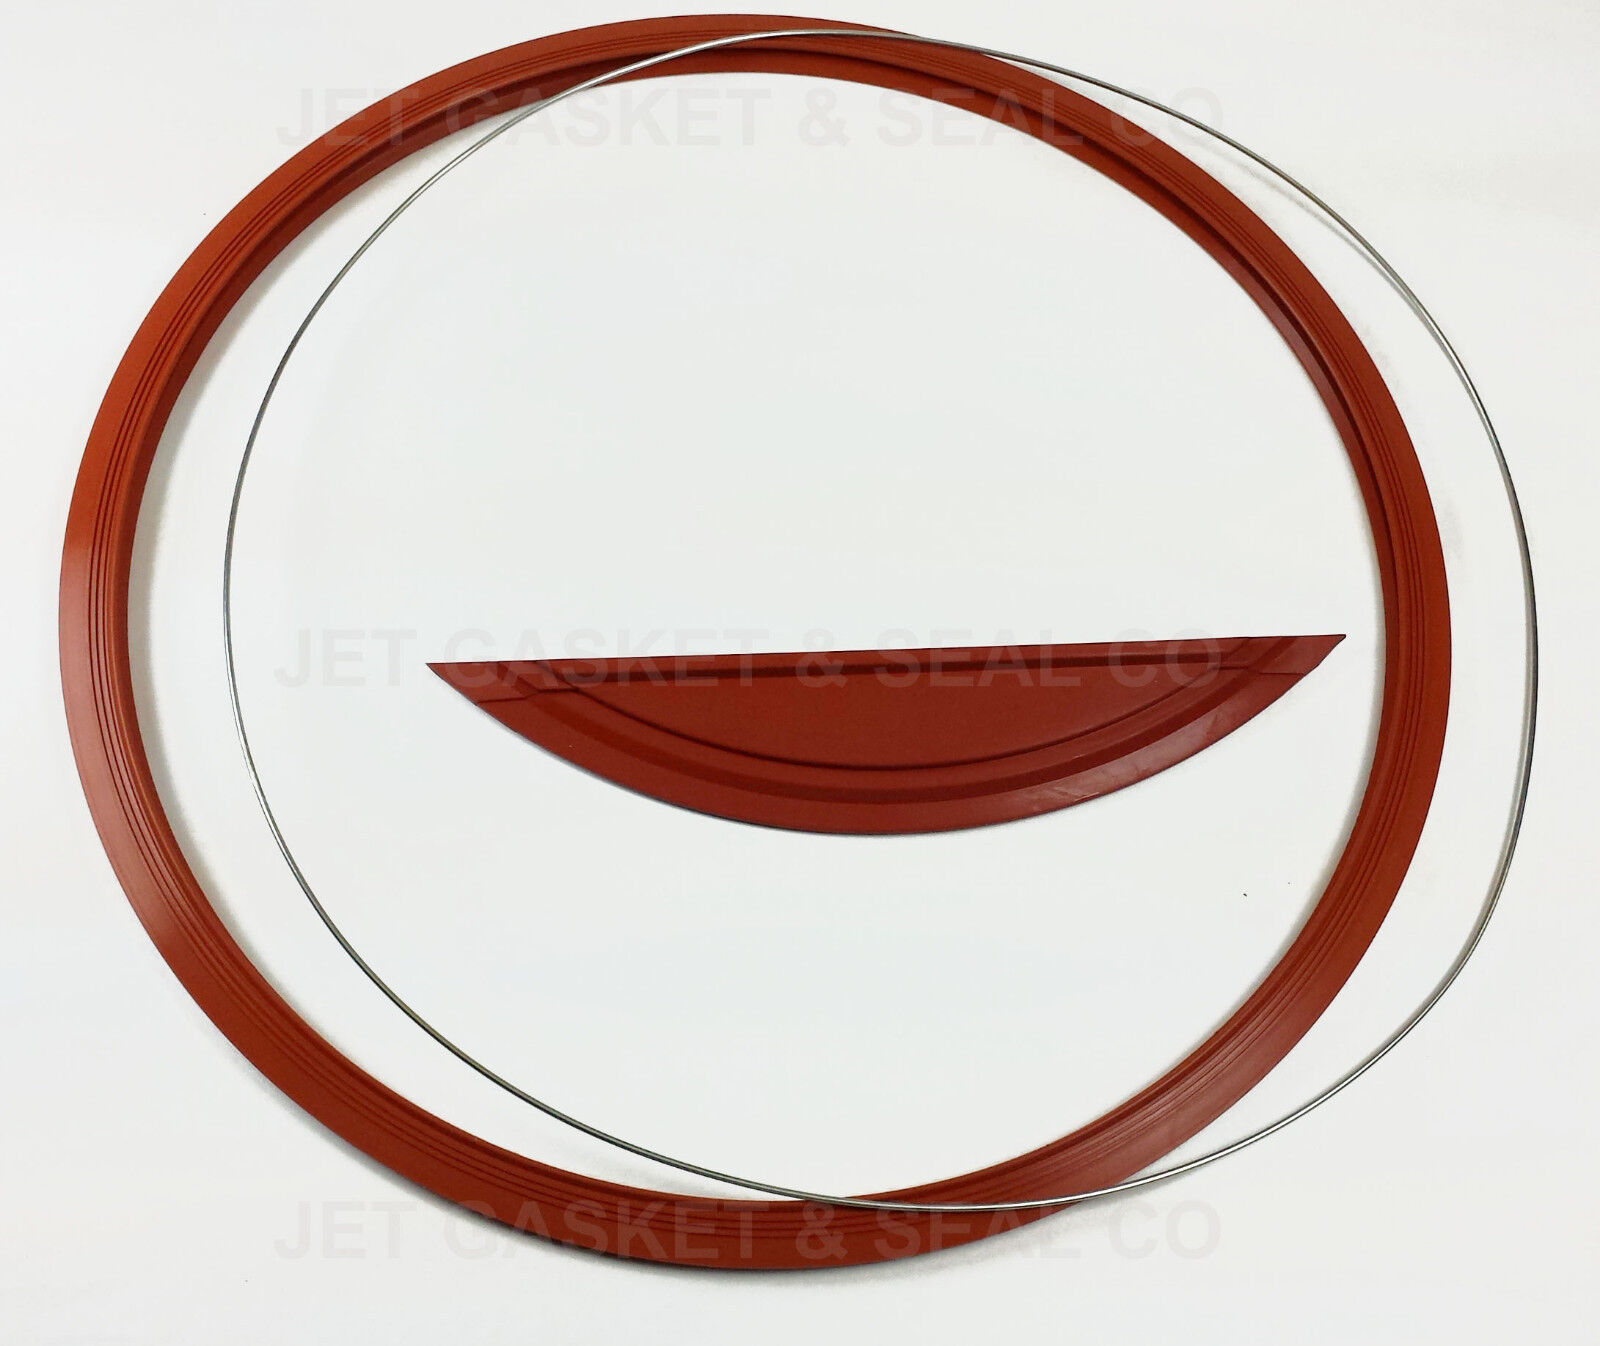 Jet Gasket Brand Door Seal With Ring Dam For Midmark M11 Wiring Diagram 1 Of 1free Shipping